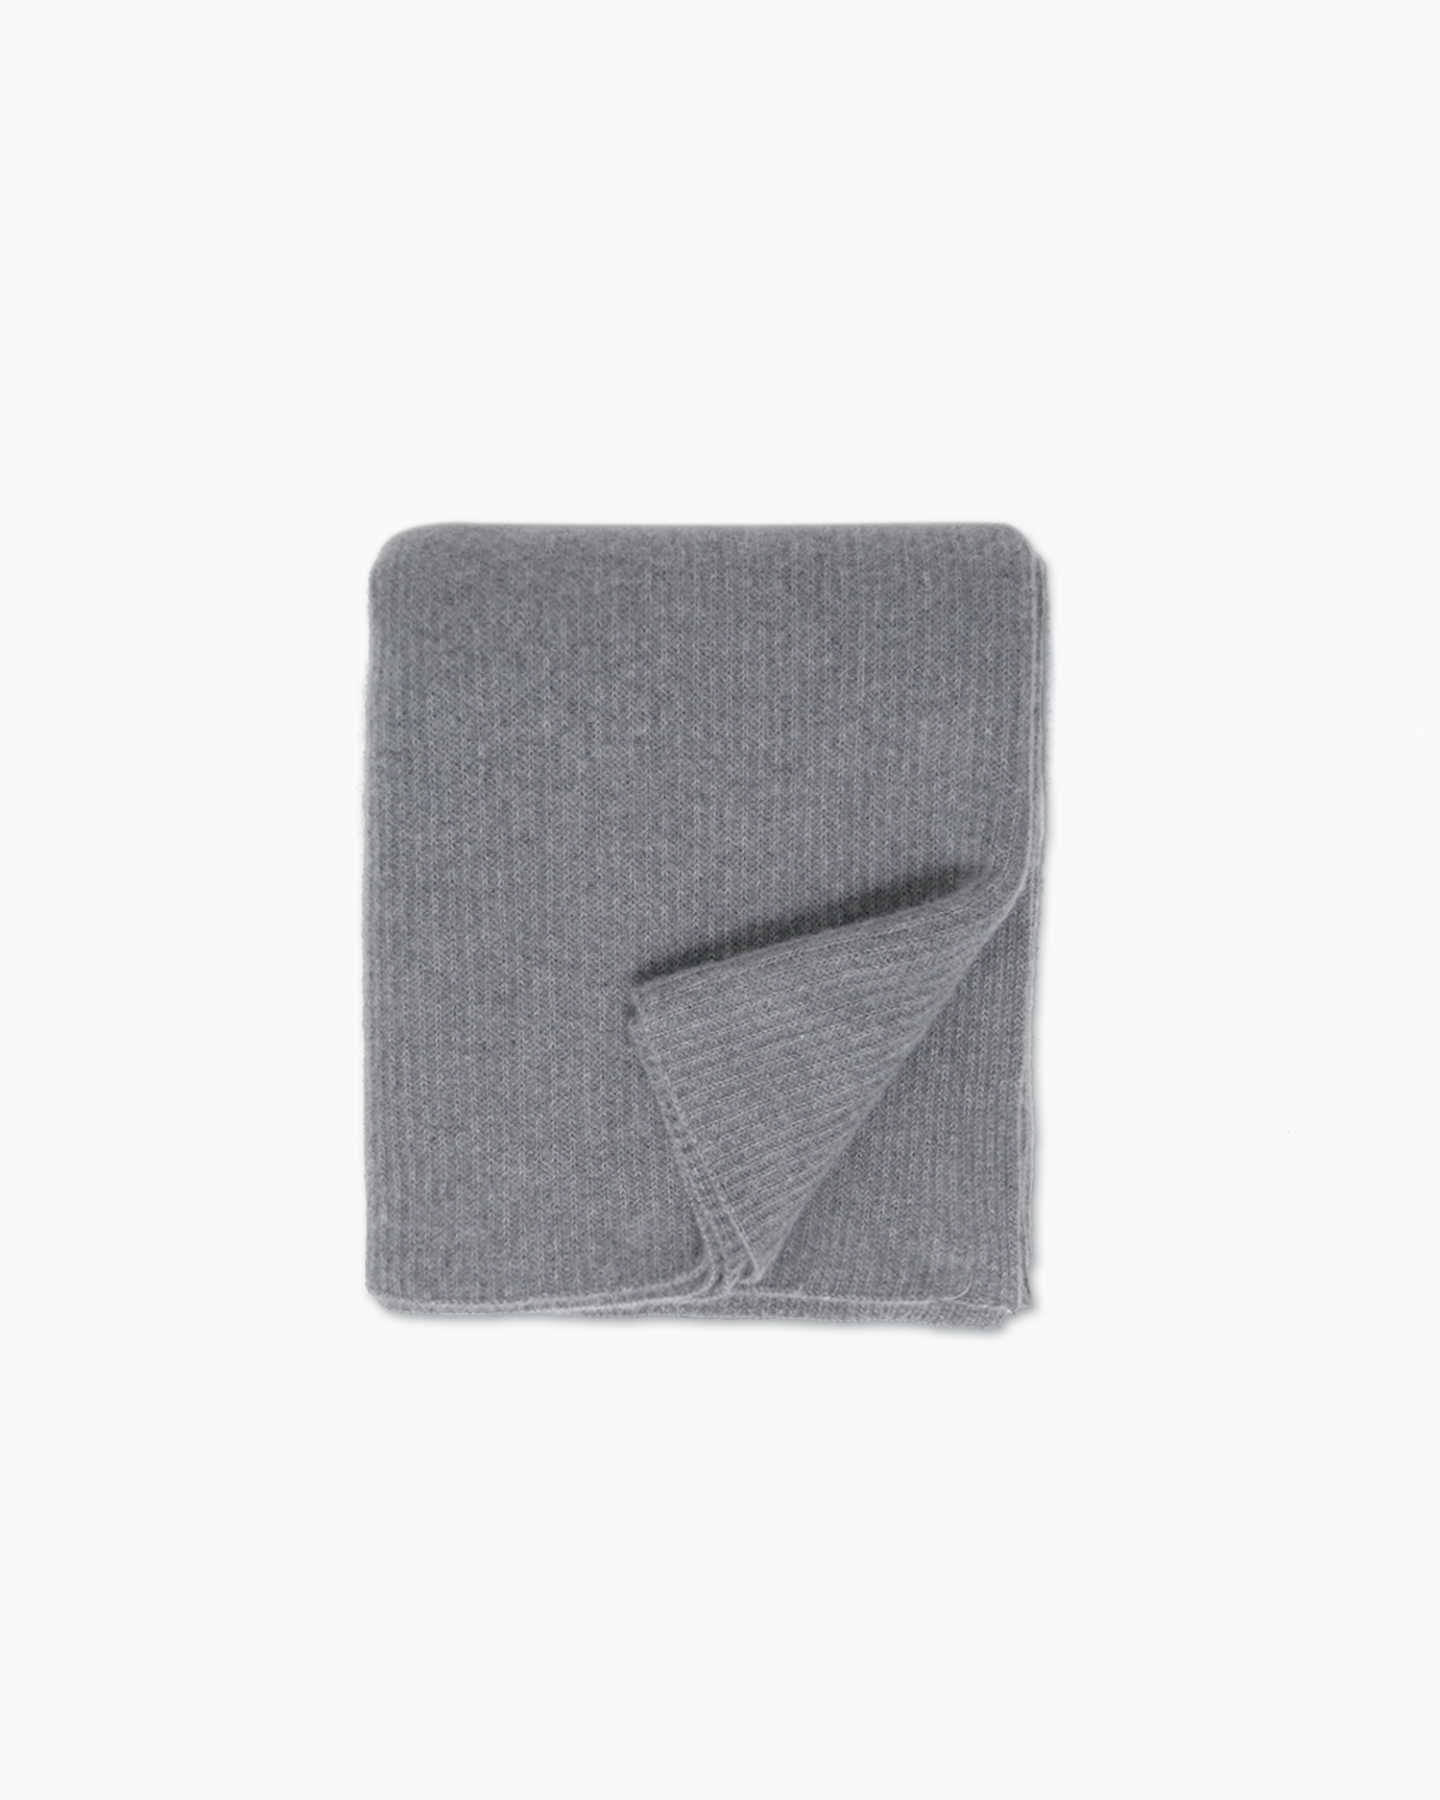 Ribbed Knit Cashmere Throw - Heather Grey - 0 - Thumbnail